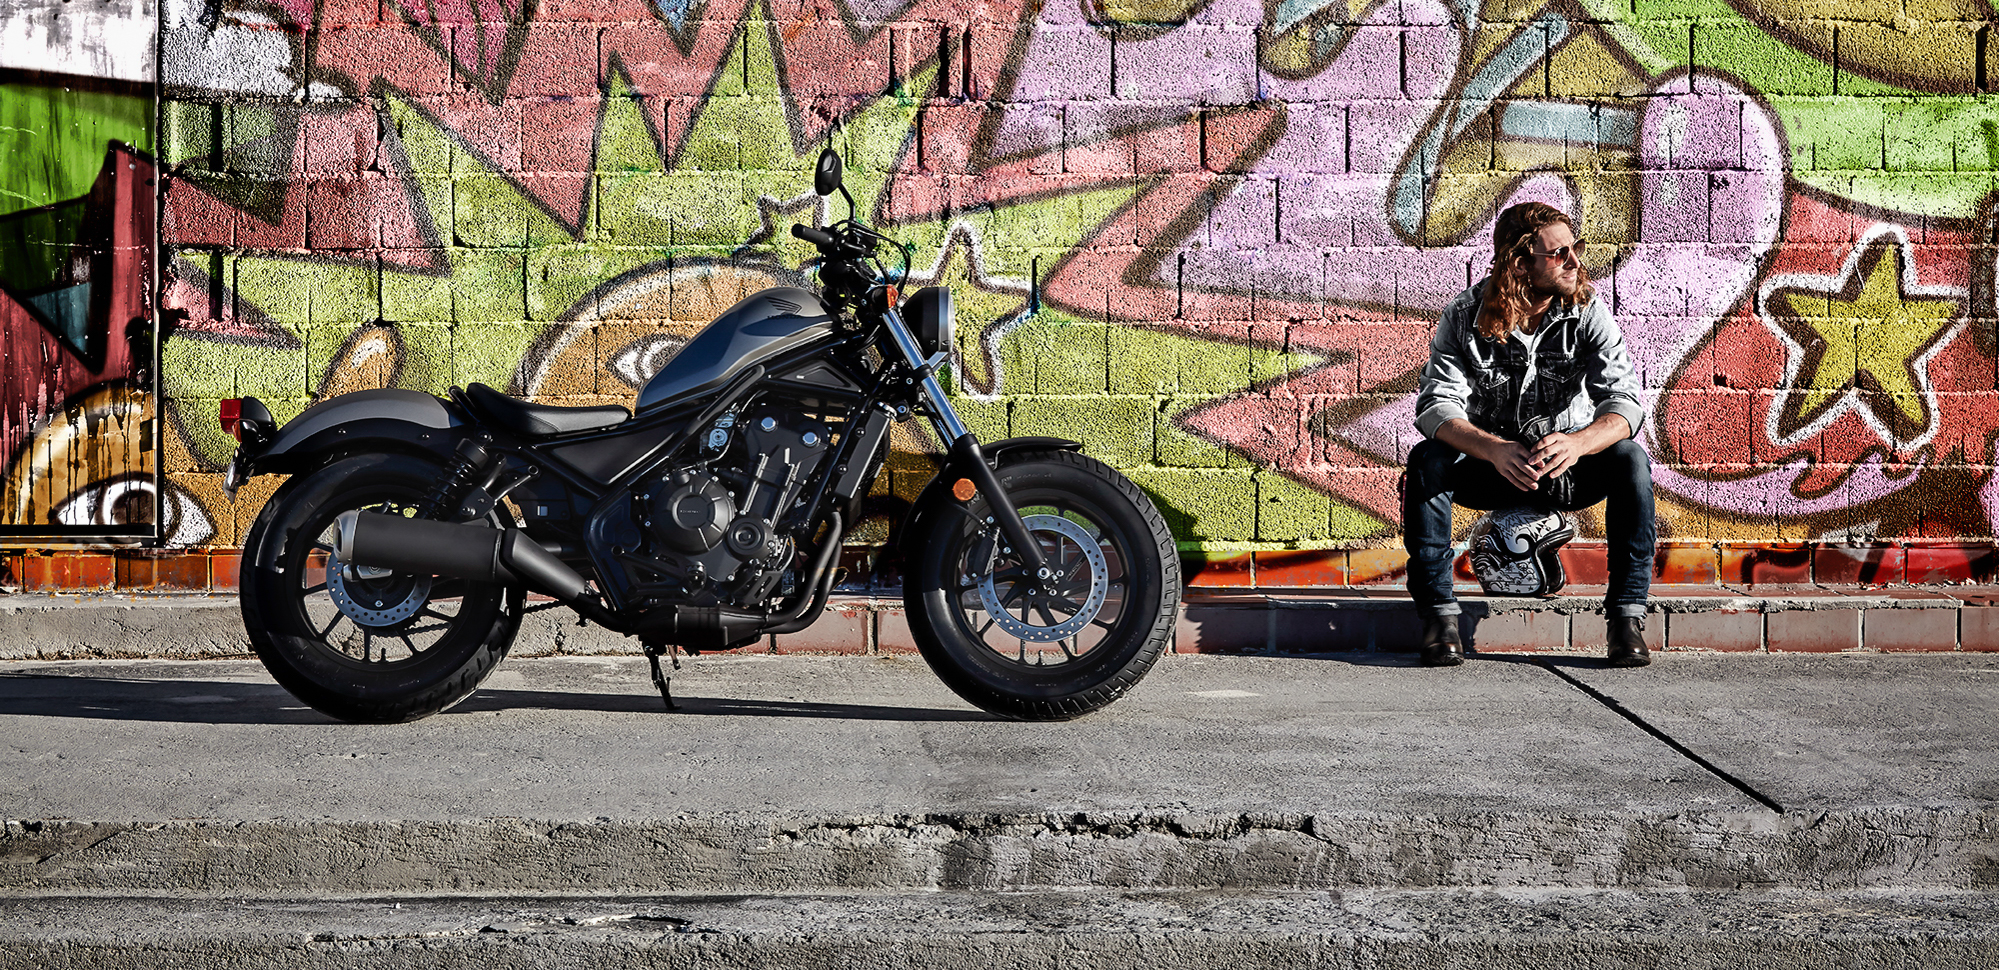 Honda introduces Rebel 300 and Rebel 500 - RevZilla